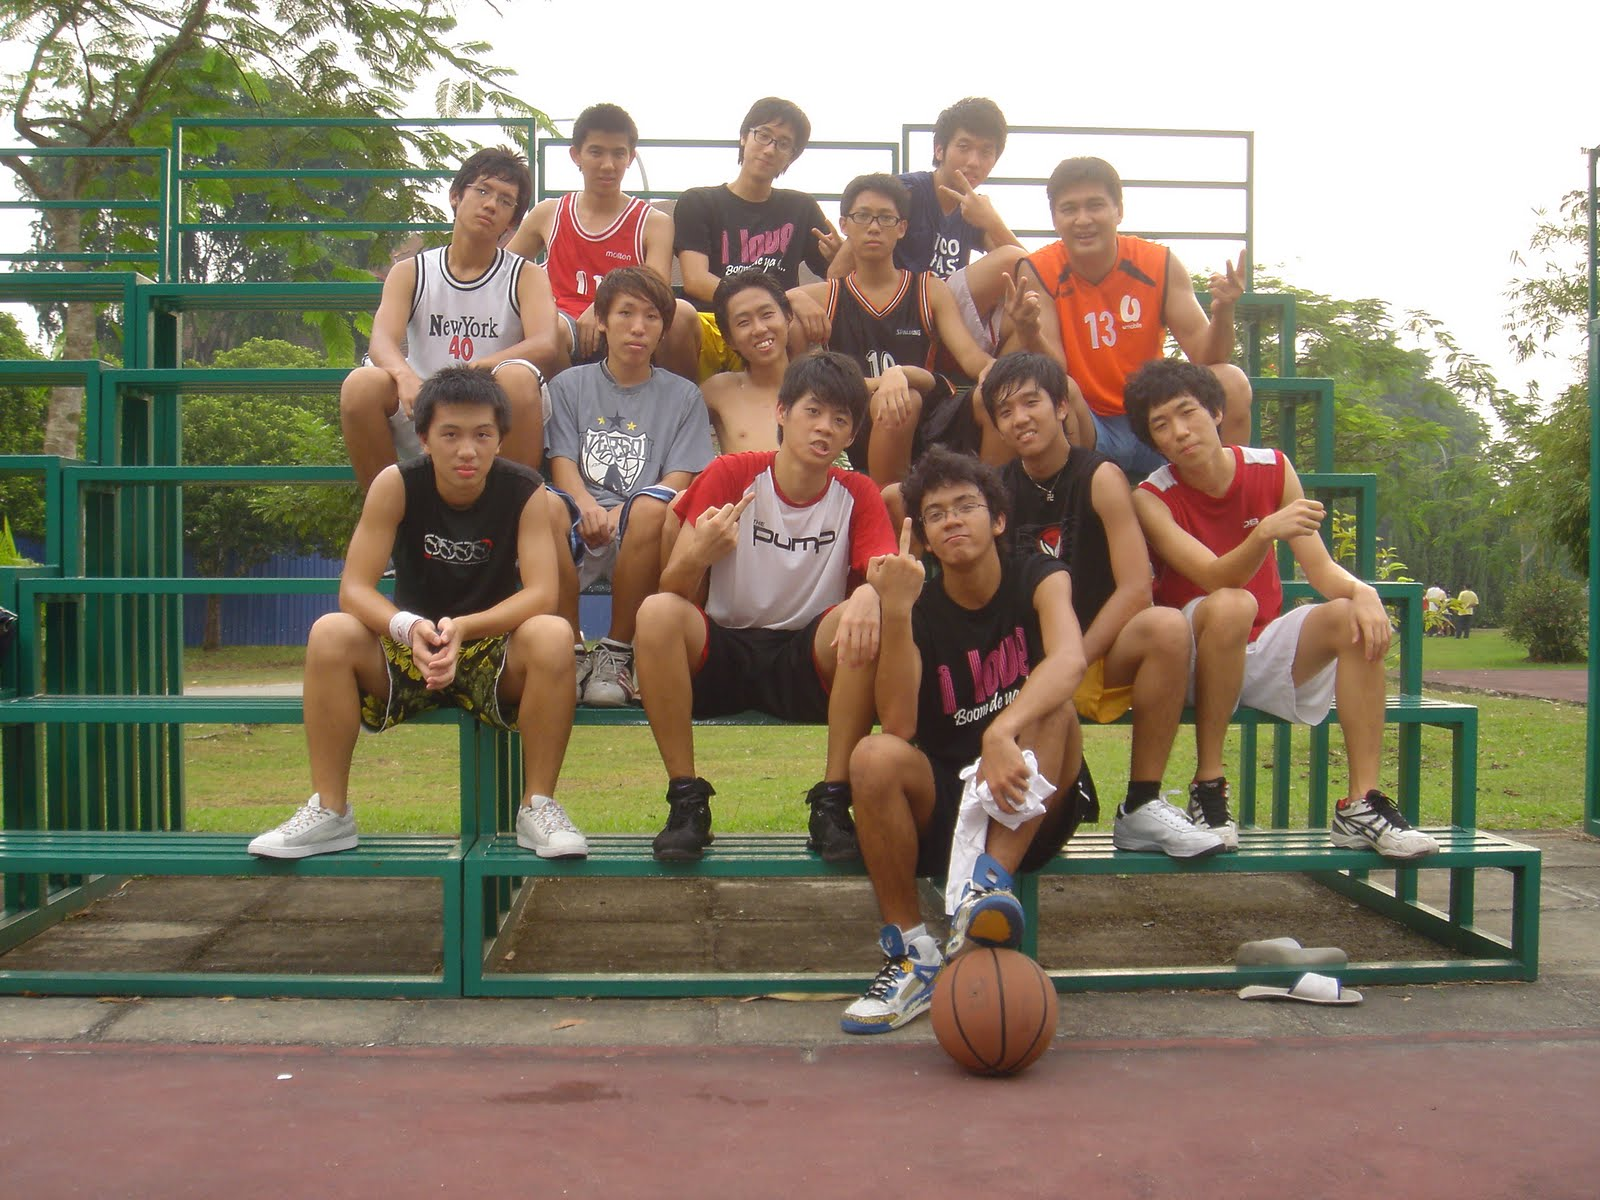 Stomping Street: enjoying playing sports with ur friends